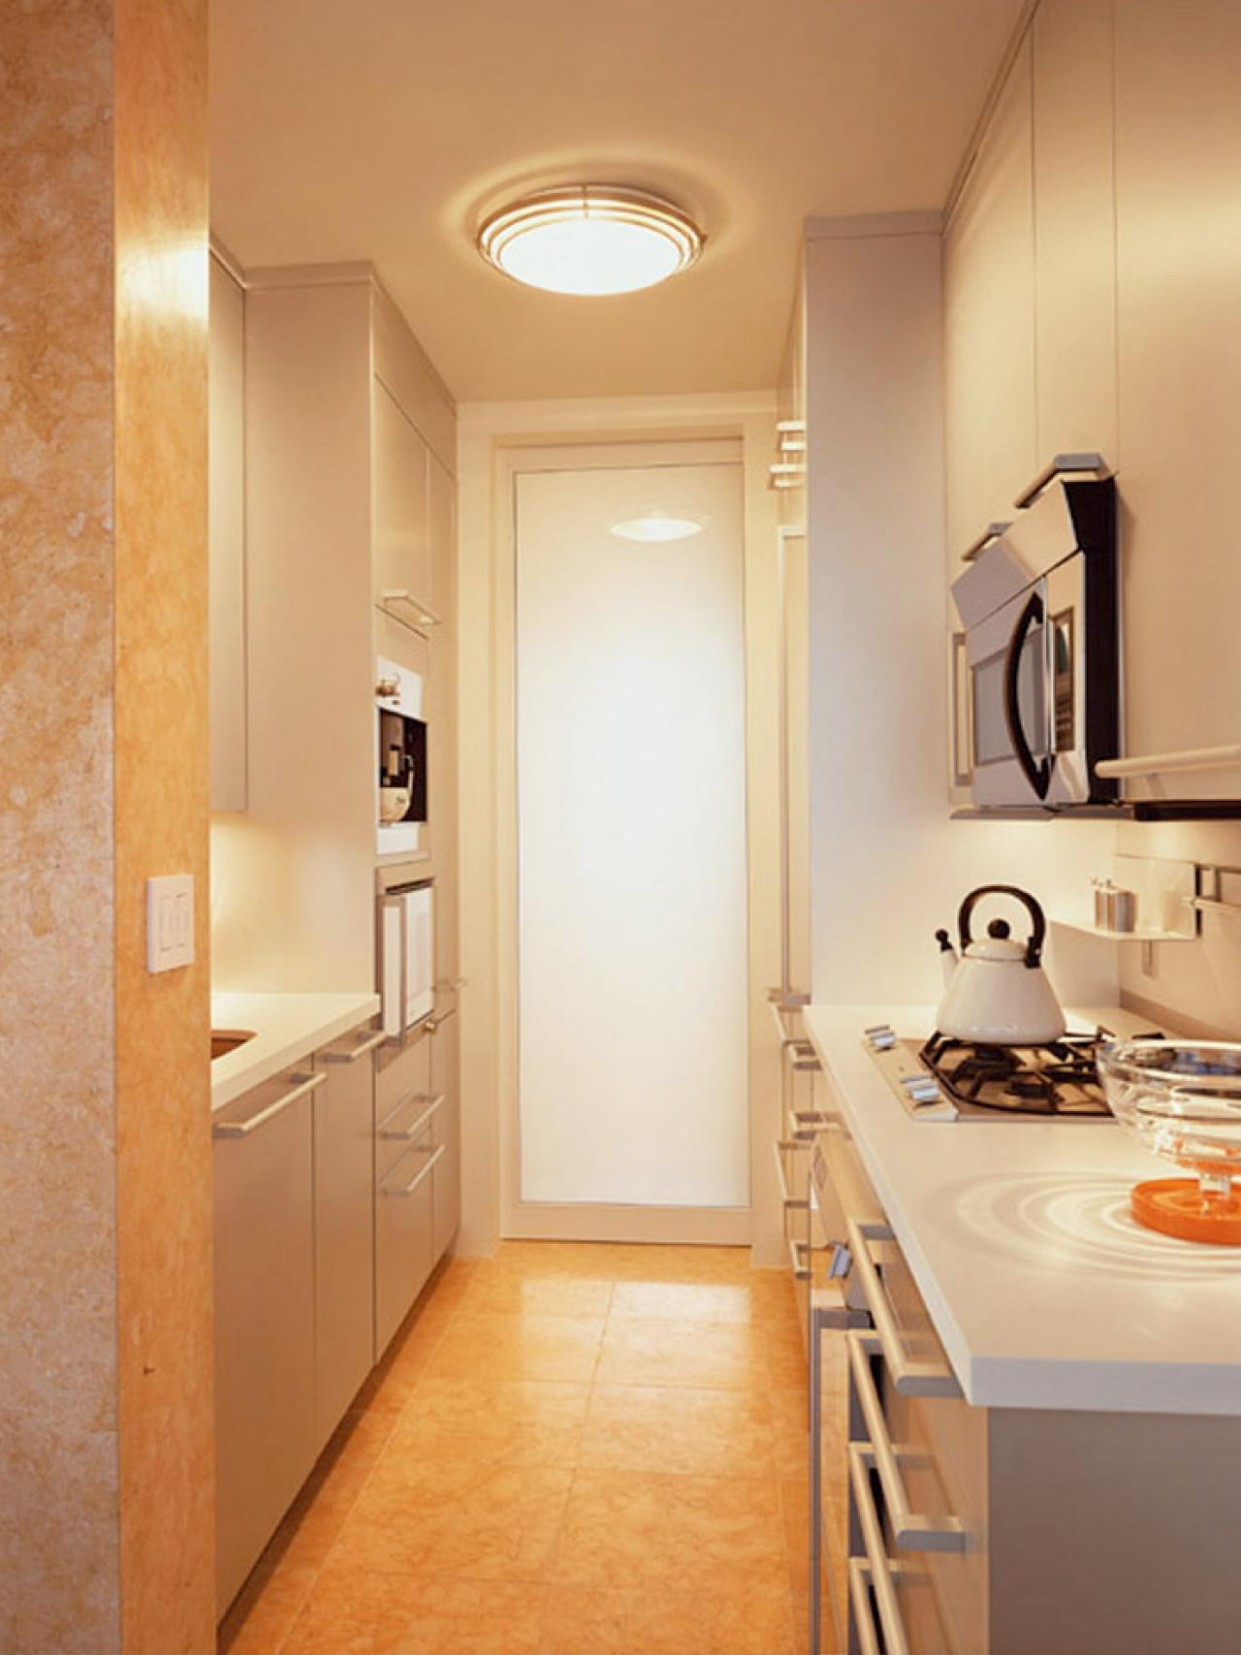 Small Galley Kitchen Design: Pictures & Ideas From HGTV  HGTV - Diy Galley Kitchen Cabinet Ideas